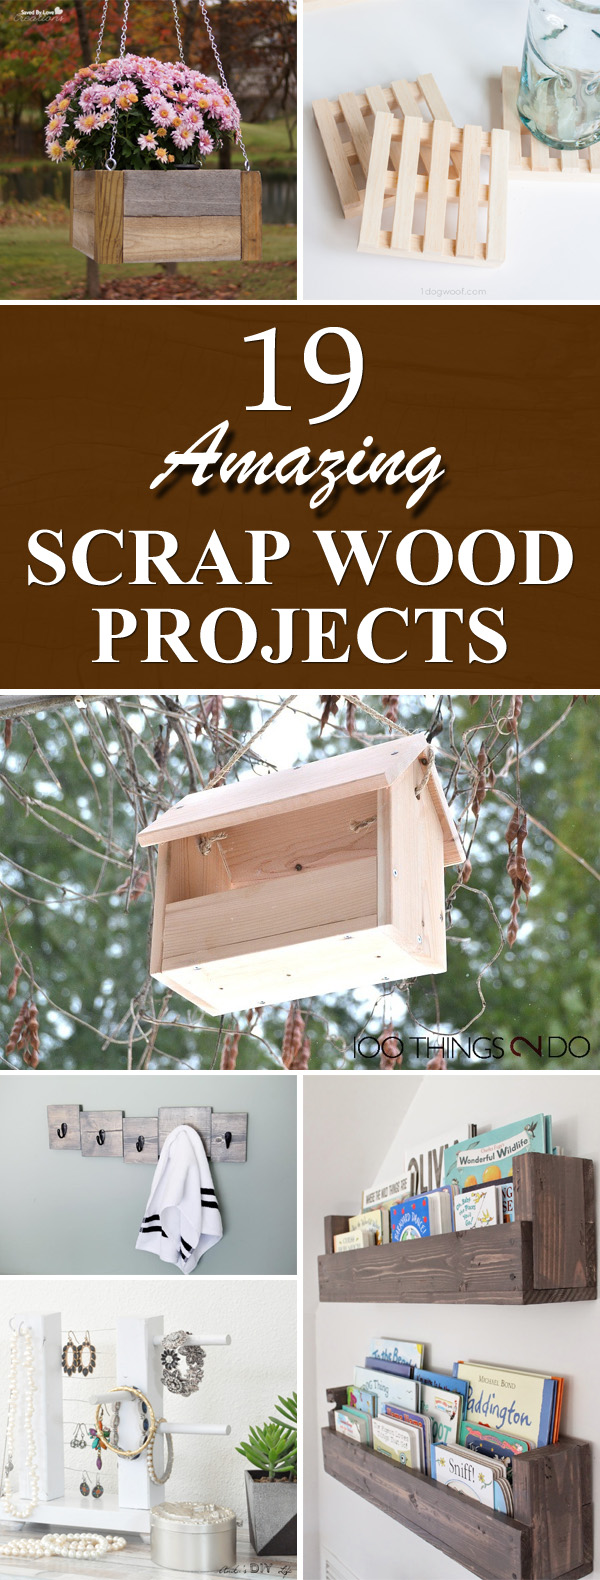 19 Amazing DIY Scrap Wood Projects